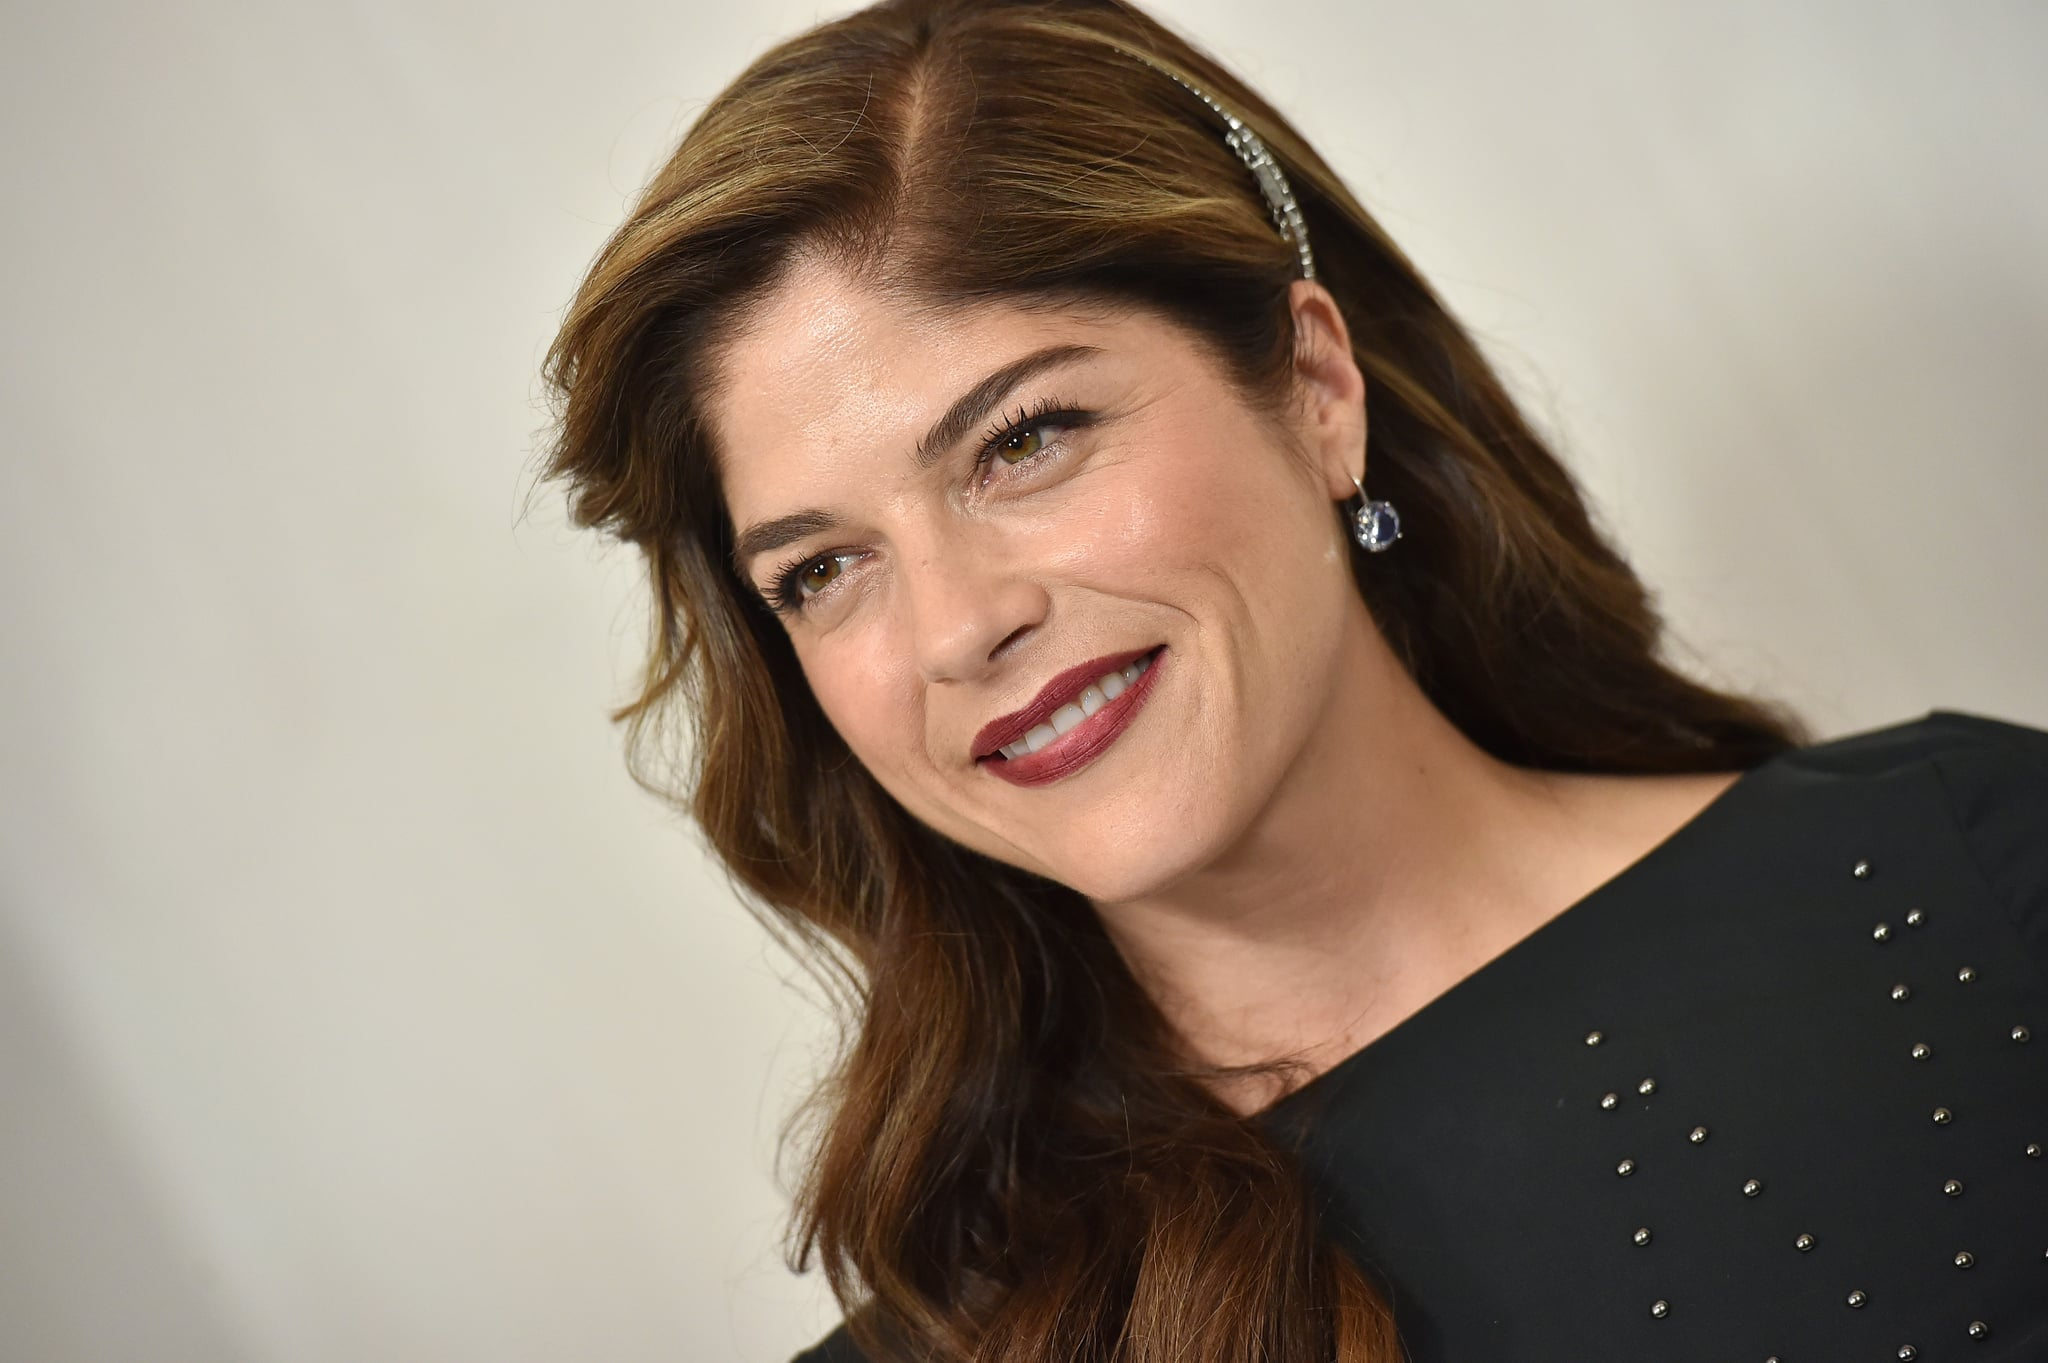 WESTWOOD, CA - OCTOBER 14:  Actress Selma Blair arrives at Hammer Museum Gala in the Garden on October 14, 2017 in Westwood, California.  (Photo by Axelle/Bauer-Griffin/FilmMagic)